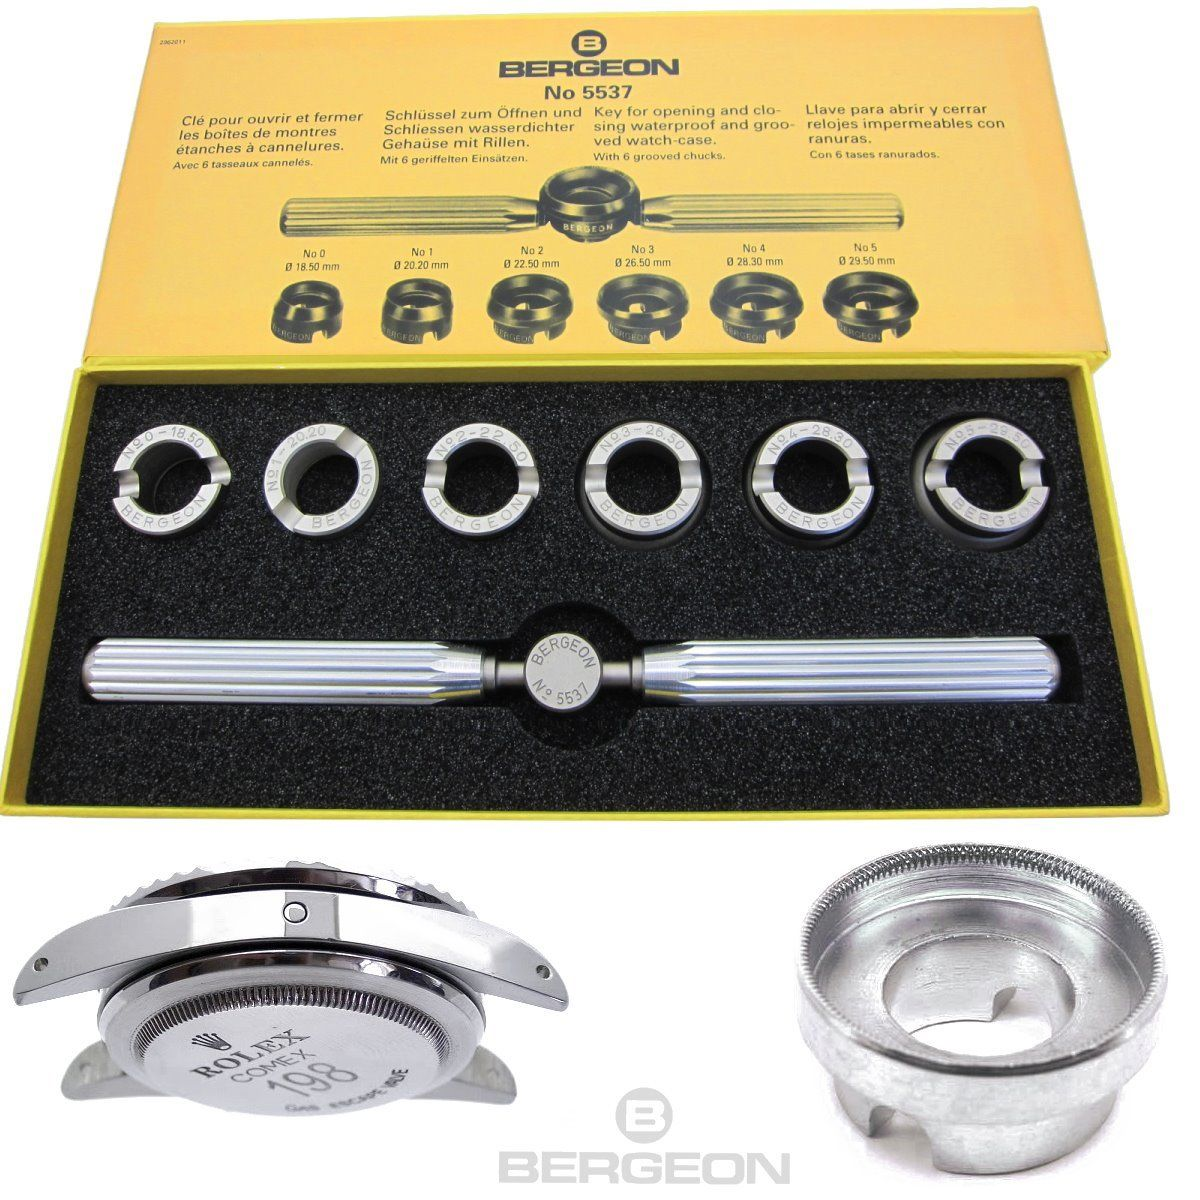 Apricasse originale Bergeon 5537 per R | Repair Tools & Kits